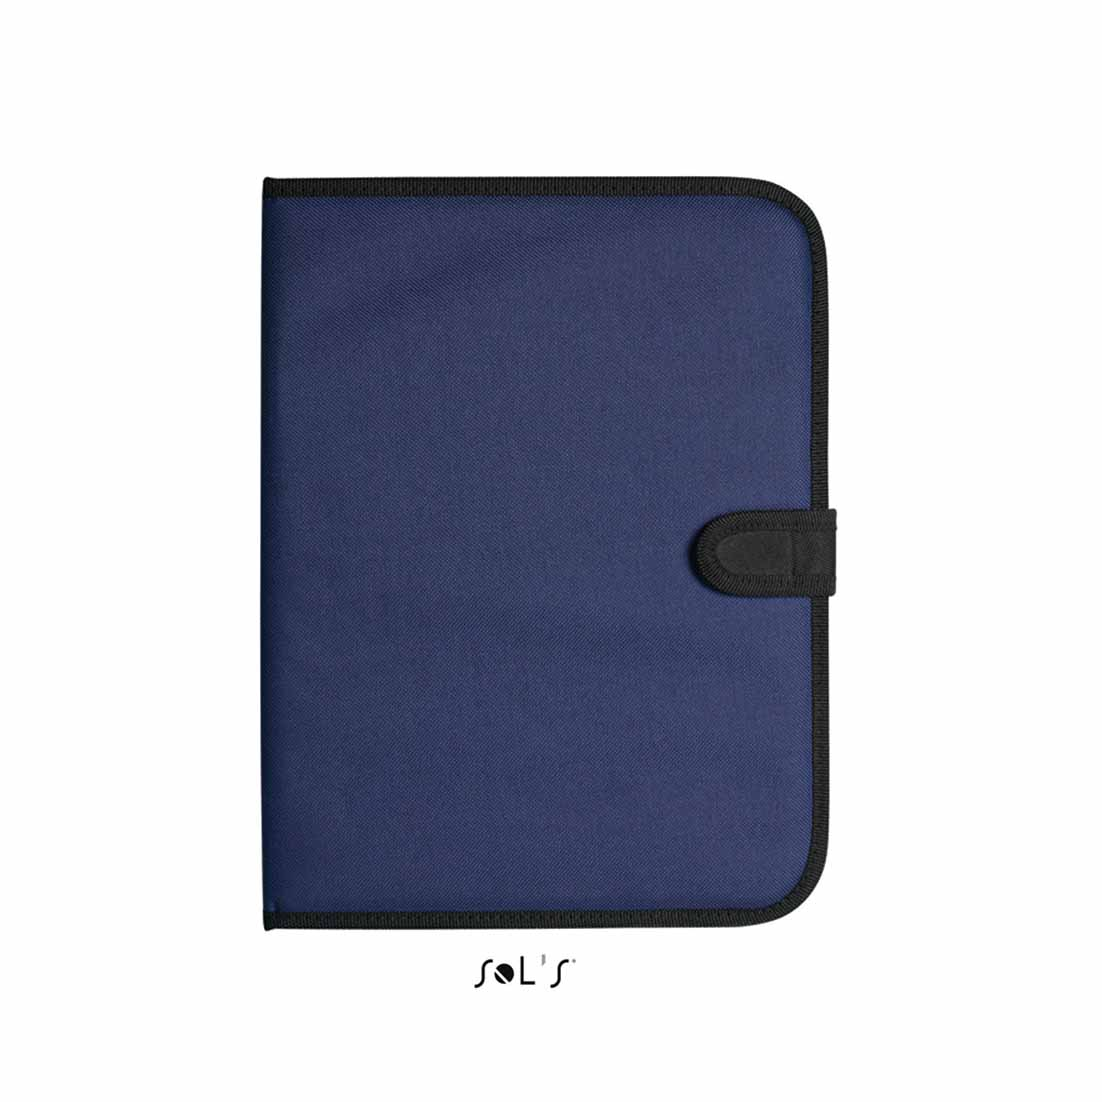 A4 conference folder with notepad - blue sol-73300 bl